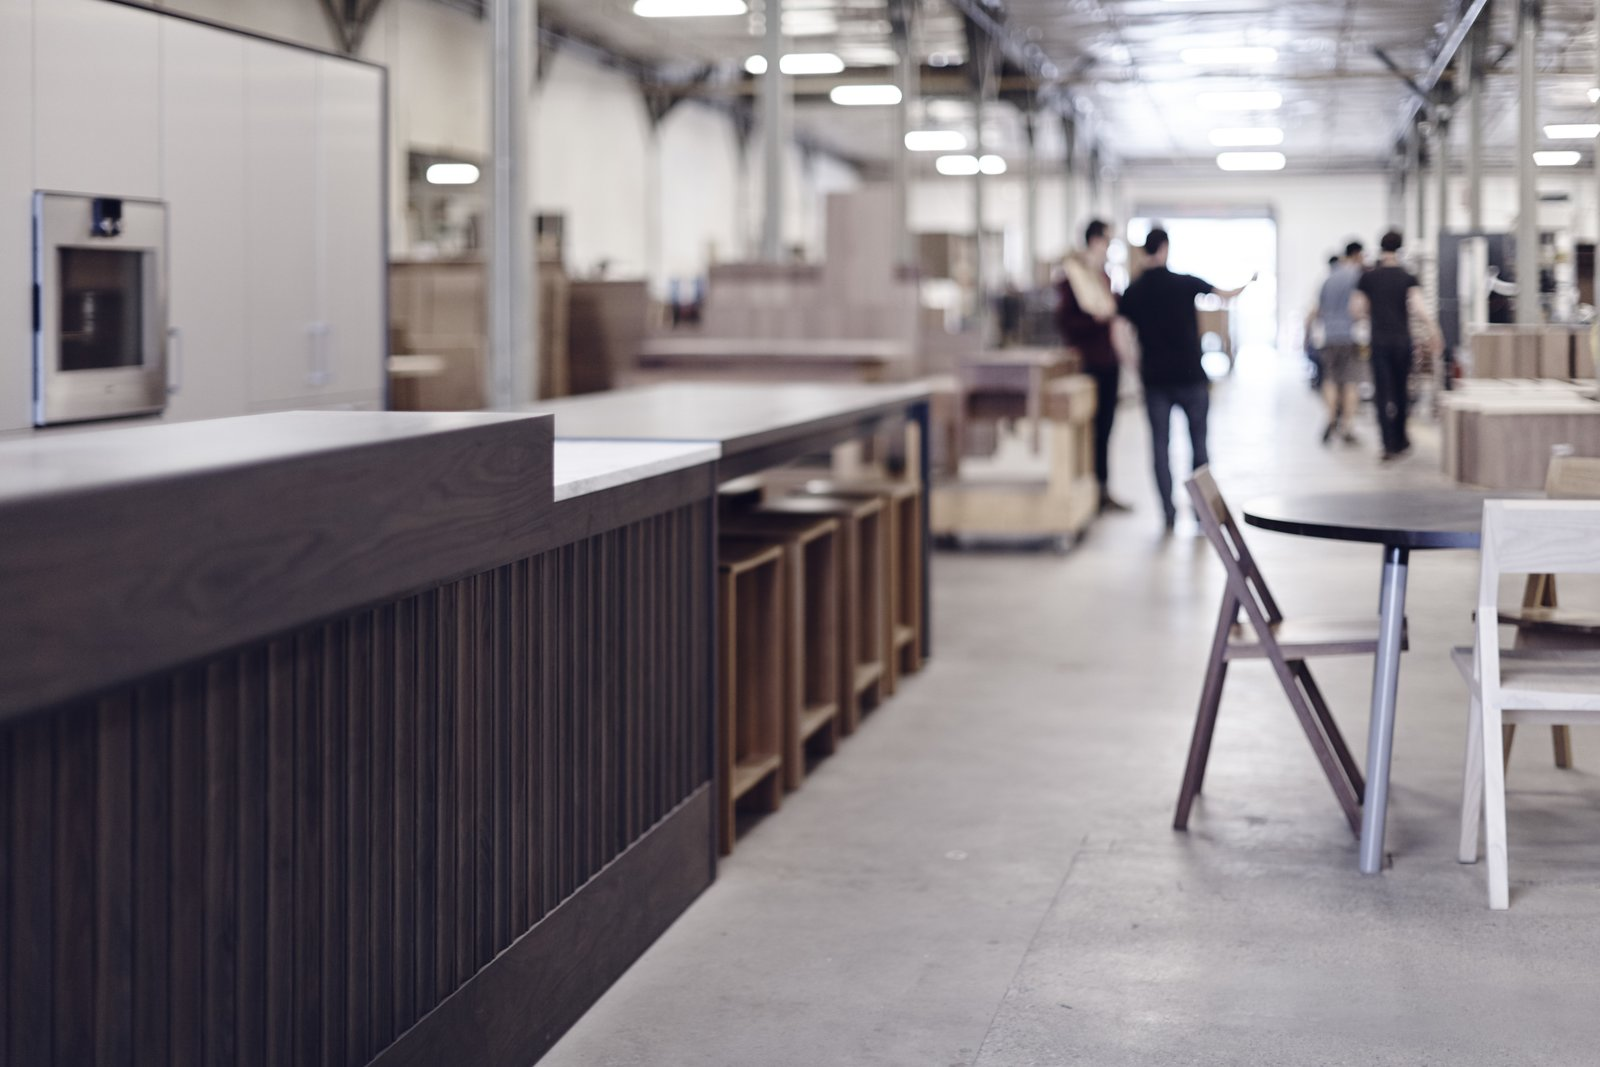 Having the test kitchen in such close proximity to the production floor—literally sharing the same space—allows Henrybuilt to implement improvements quickly and effectively. Though this requires a little extra cleaning, it emphasizes the connection between the people building the product and those actually using it.  Photo 3 of 8 in What Goes On Behind-the-Scenes at Henrybuilt's Seattle Test Kitchen